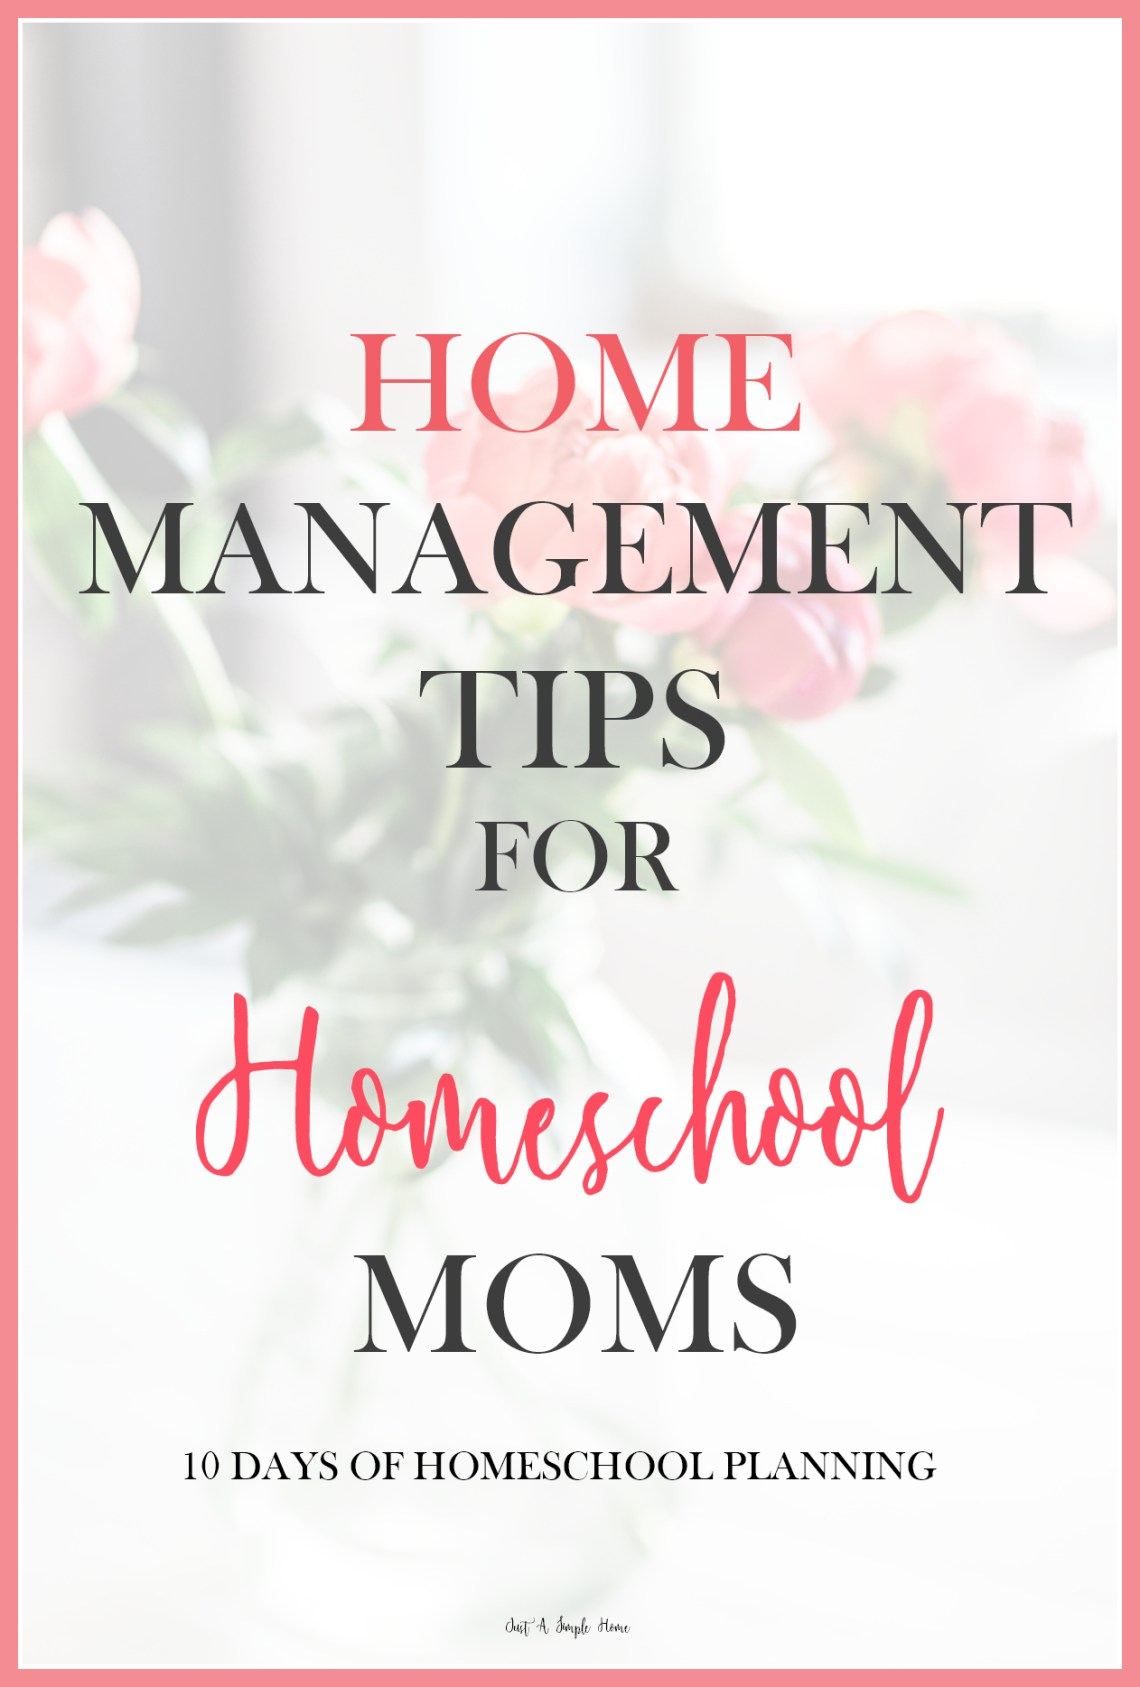 Home Management Tips for Homeschool Moms - 10 Days of Homeschool Planning